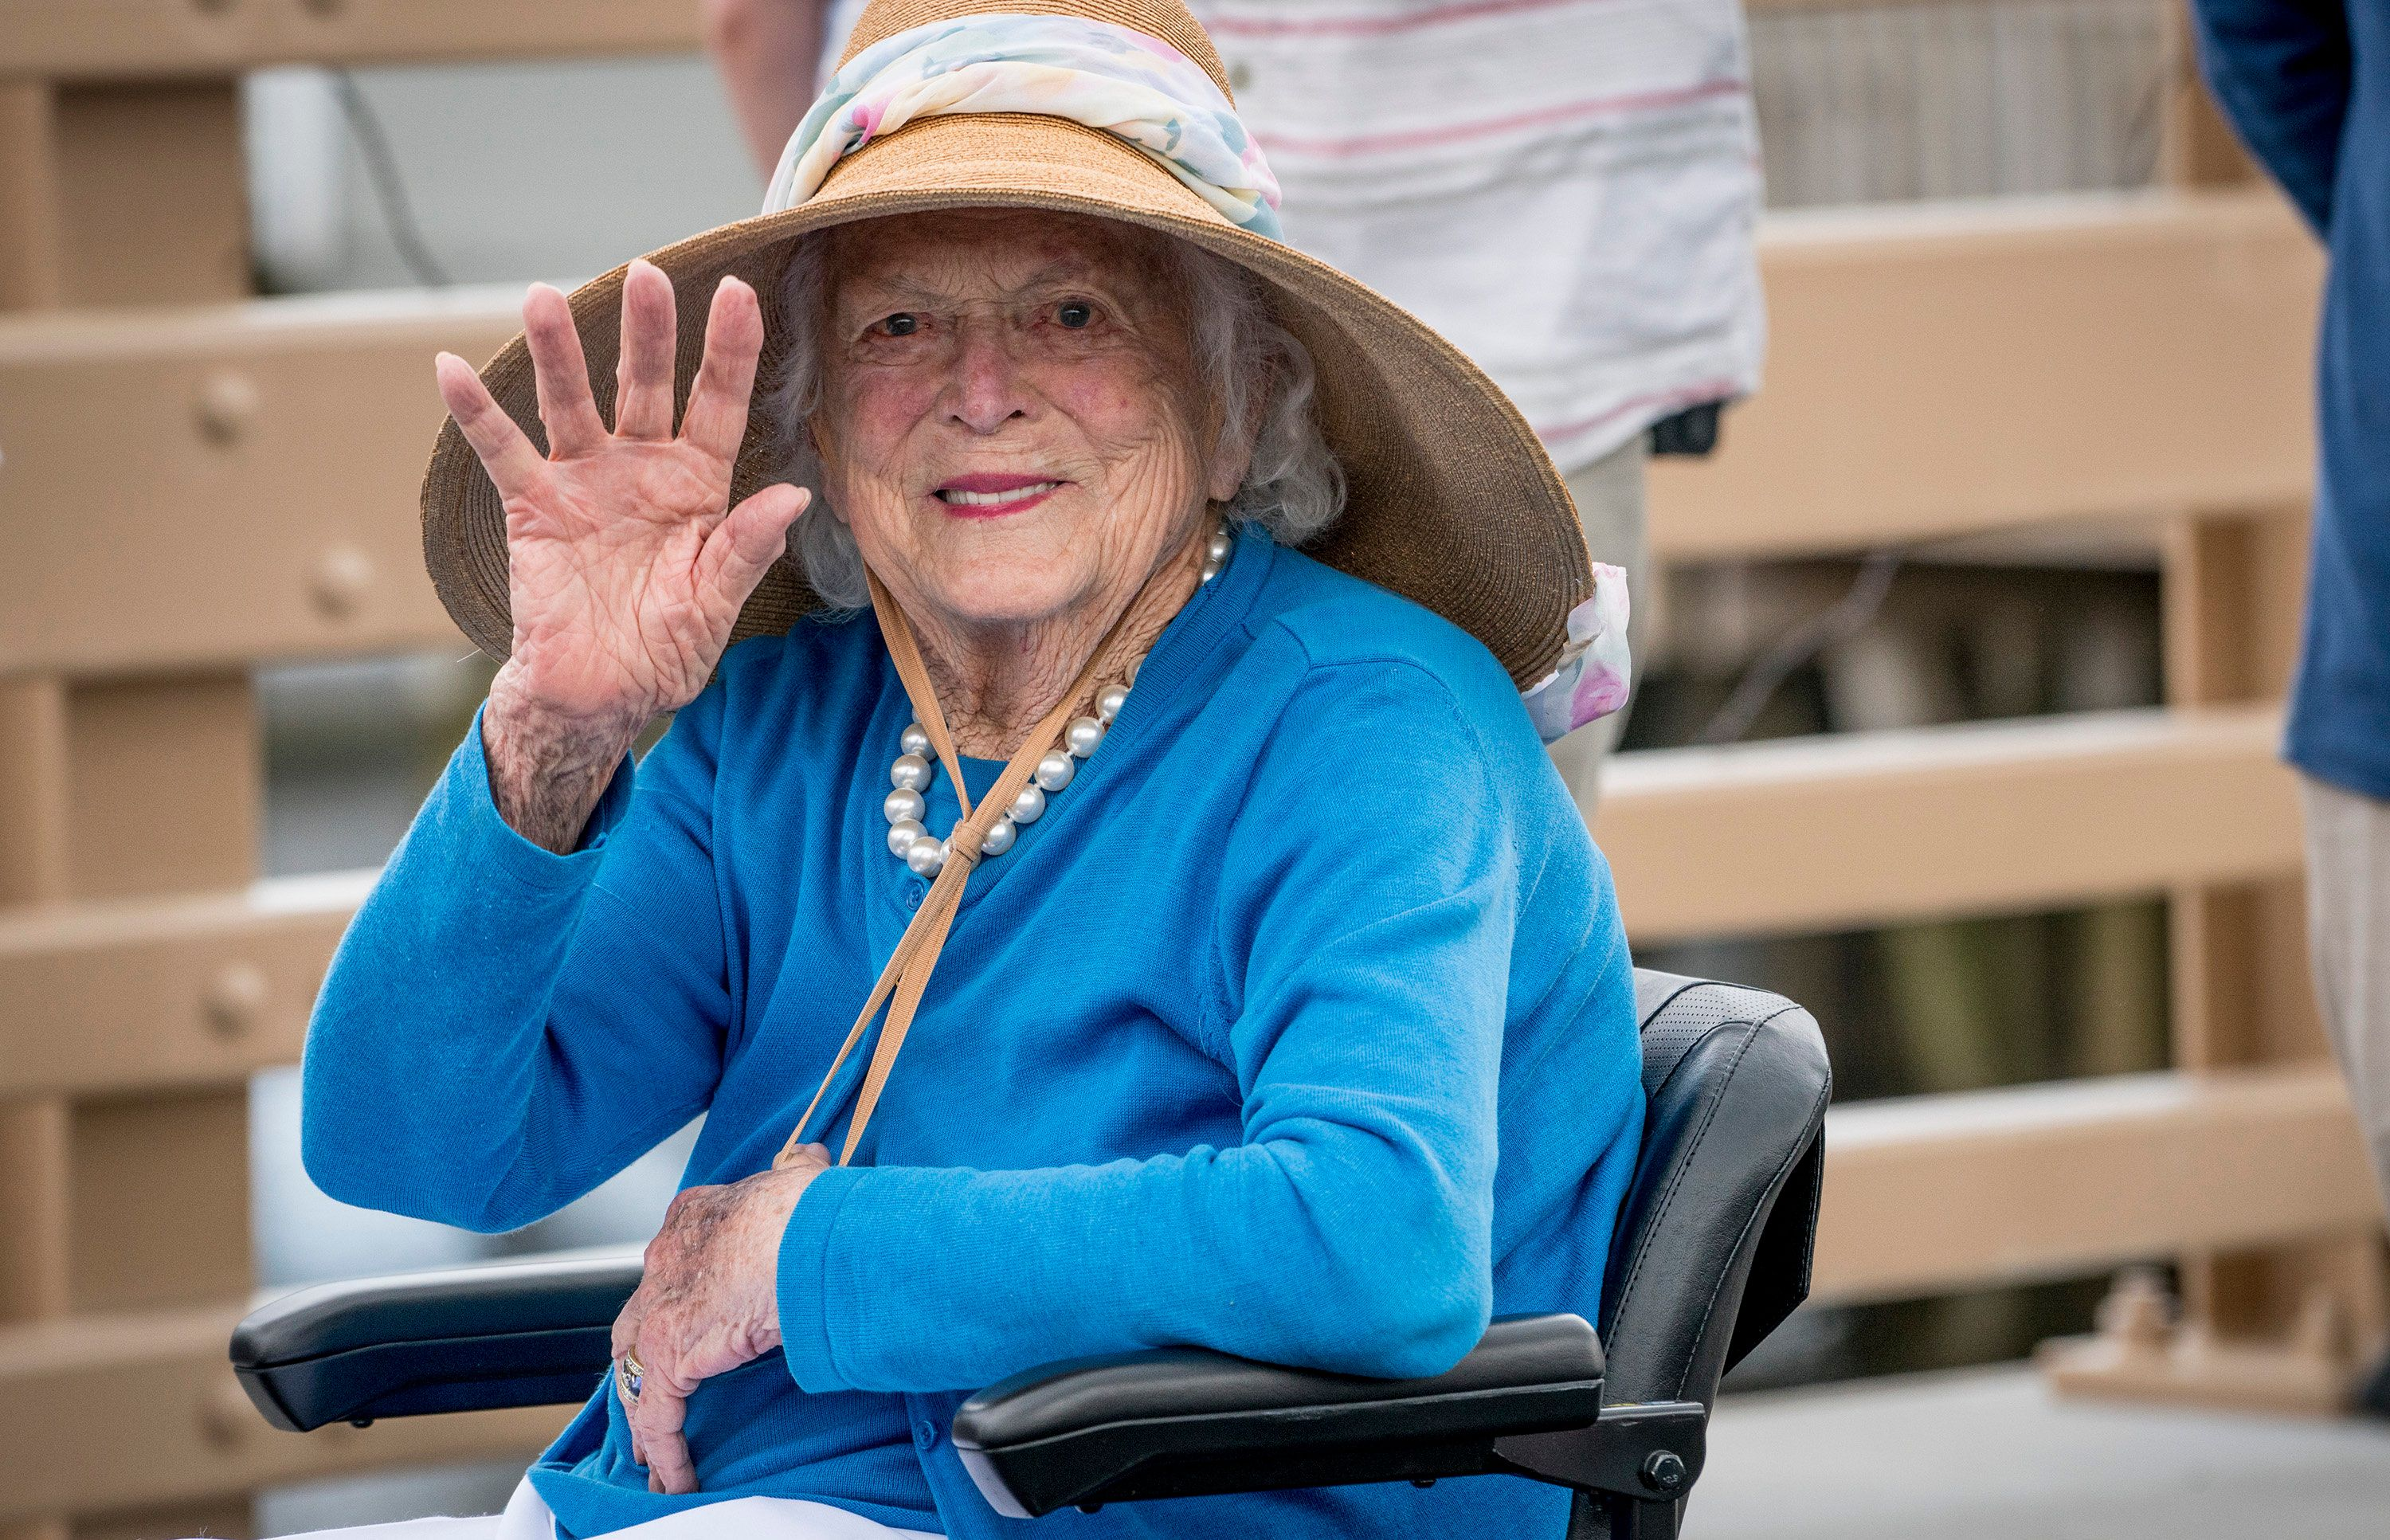 KENNEBUNK, ME - MAY 19: Former first lady Barbara Bush waves to the crowd as she arrives at the dedication of the Mathew J. Lanigan bridge Friday, May 19, 2017. The bridge was first built in 1933 and connects Kennebunk and Kennebunkport. The new bridge cost $2.7 million and was completed in a very short time frame. (Photo by Gabe Souza/Portland Press Herald via Getty Images)